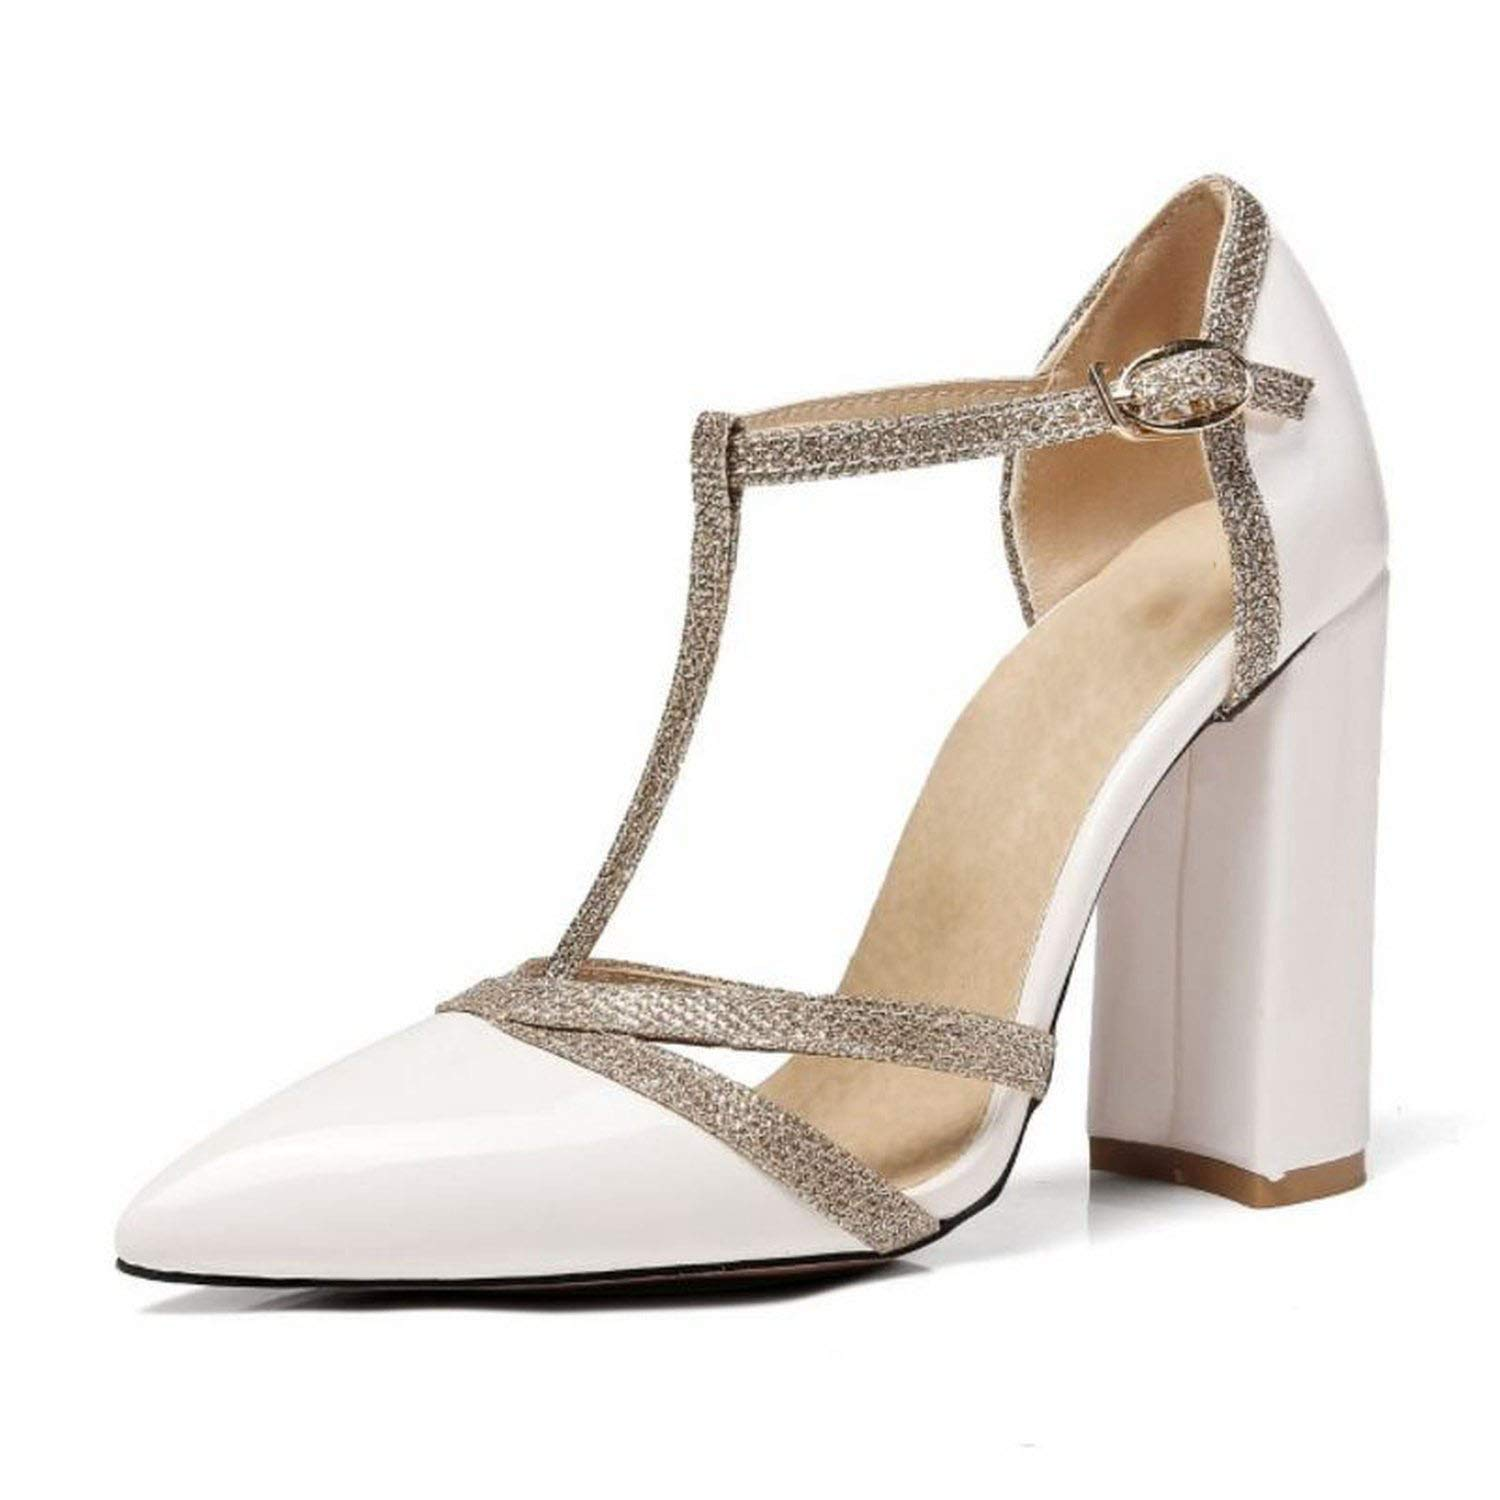 White shine-hearty Sexy Lady High Heel Sandals Women Ankle Strap Buckle Sandal Office Summer shoes Women Footwear